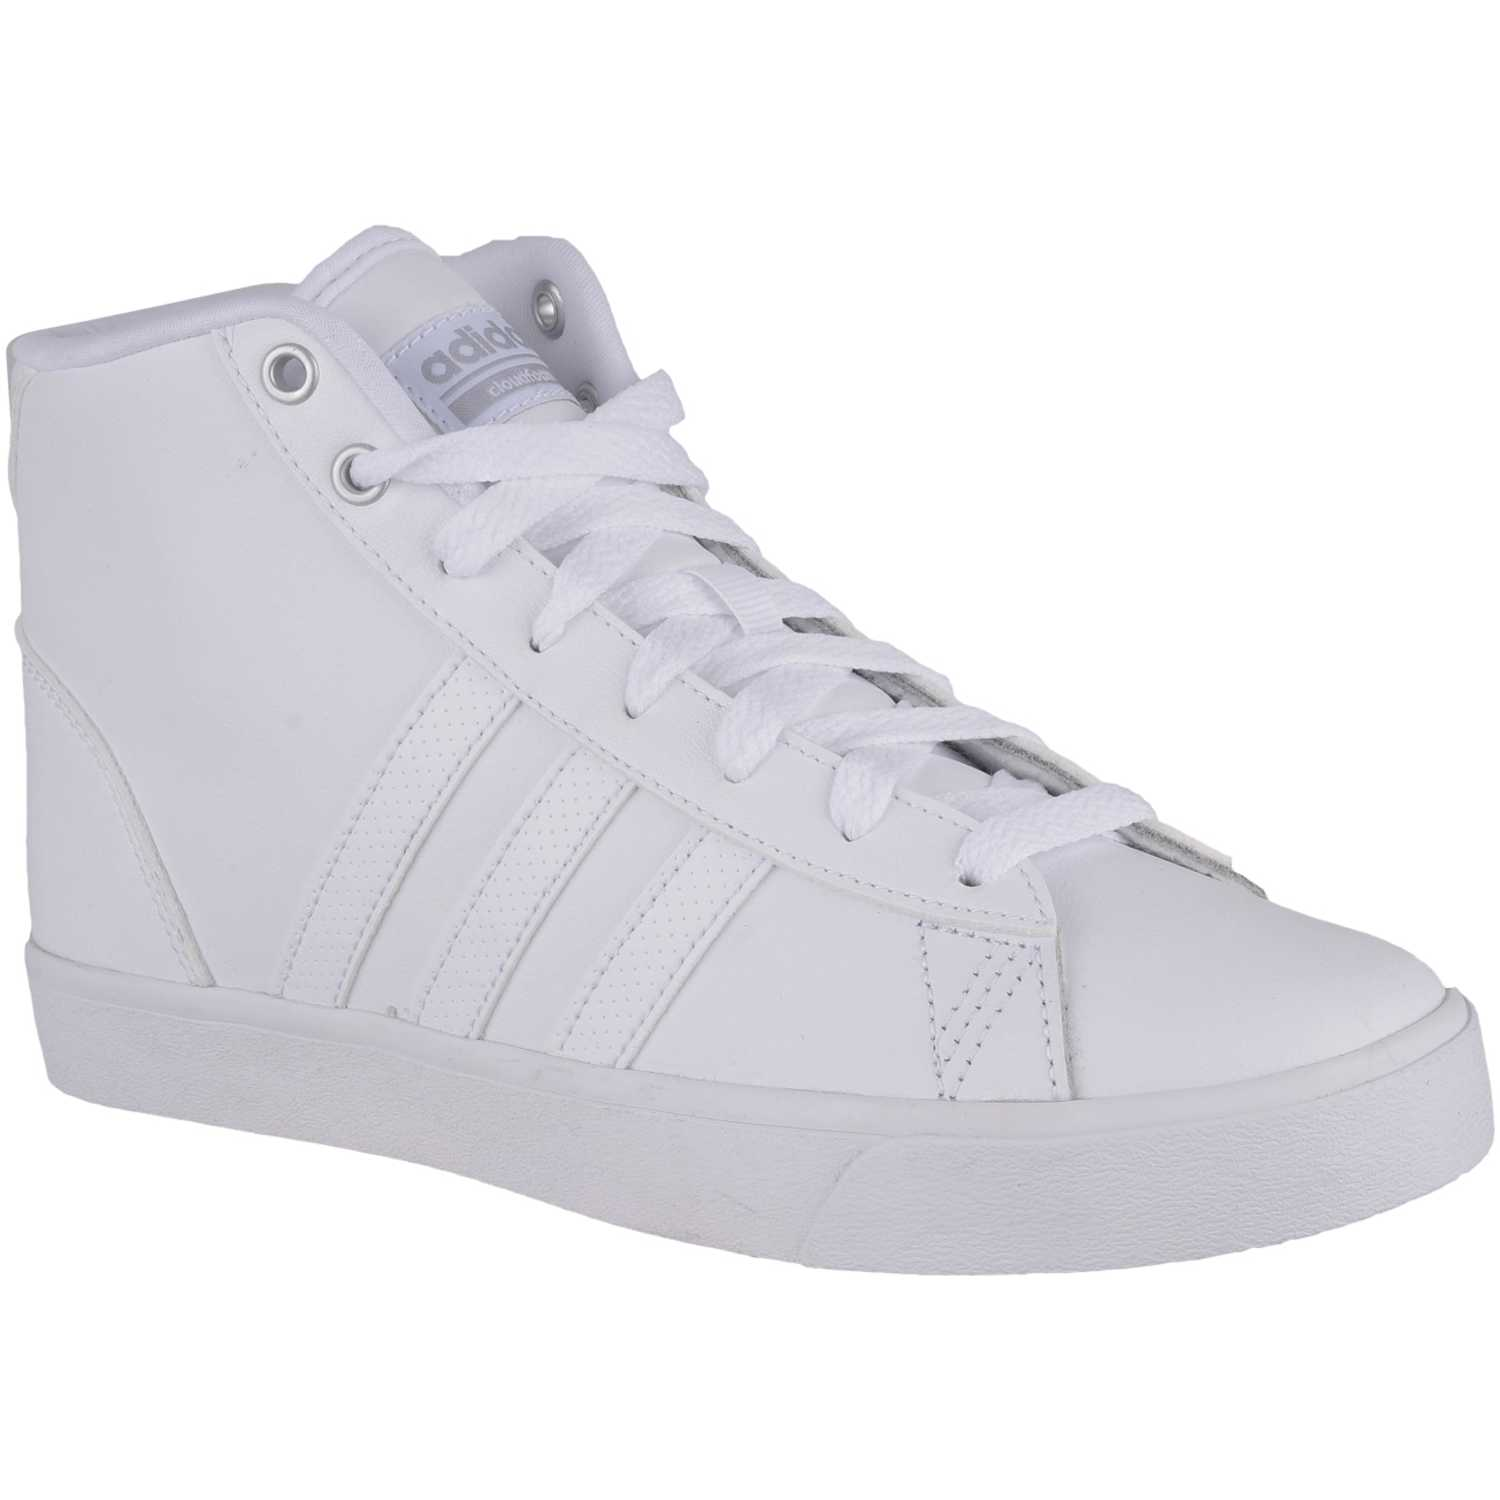 Casual de Mujer adidas NEO Blanco cf daily qt mid w